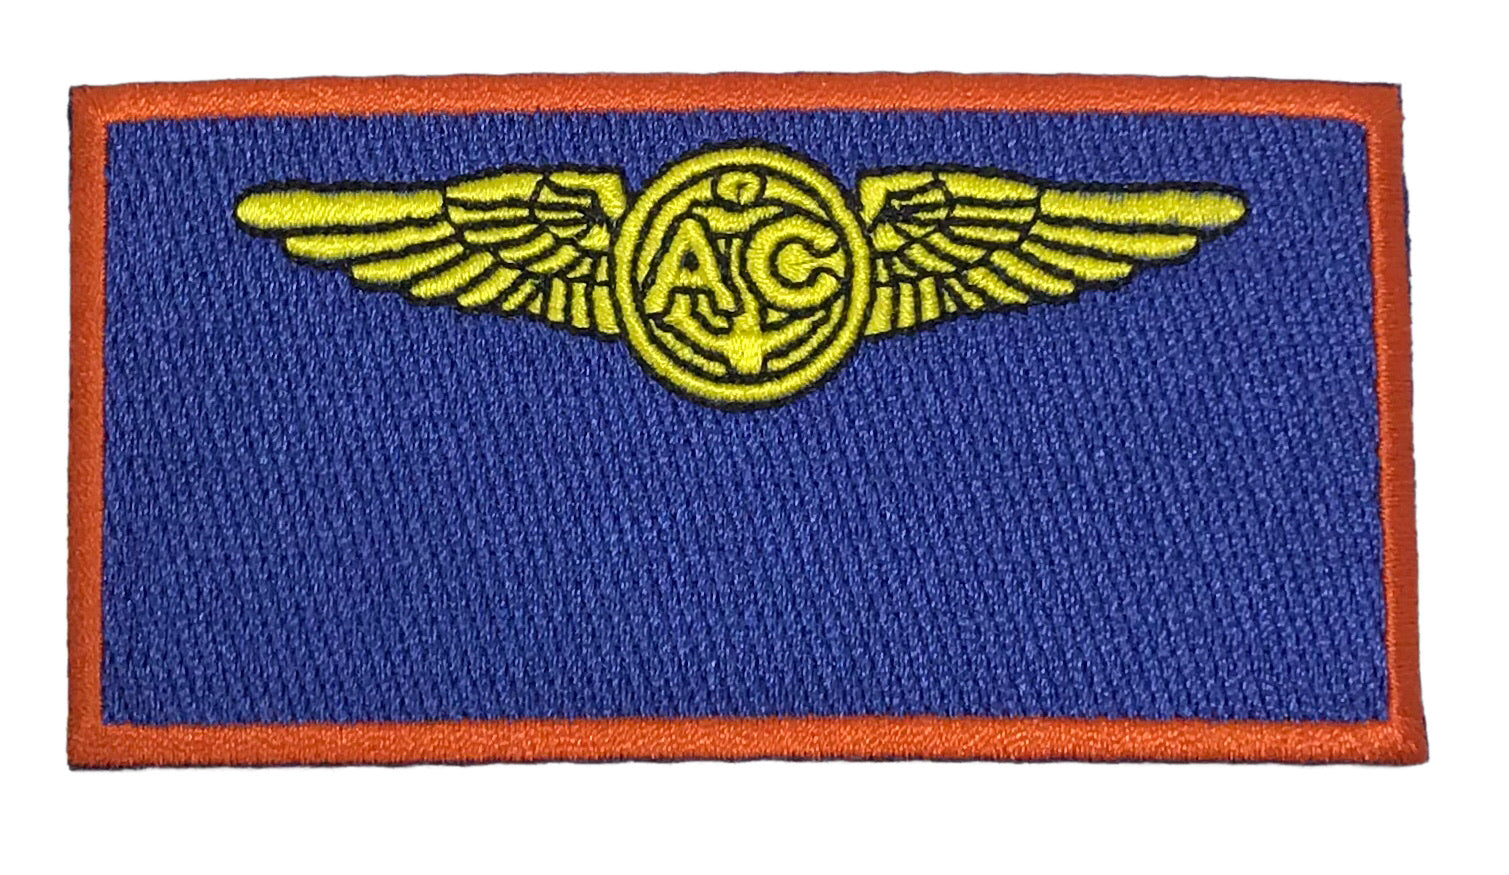 Aircrew Name Tag Embroidery